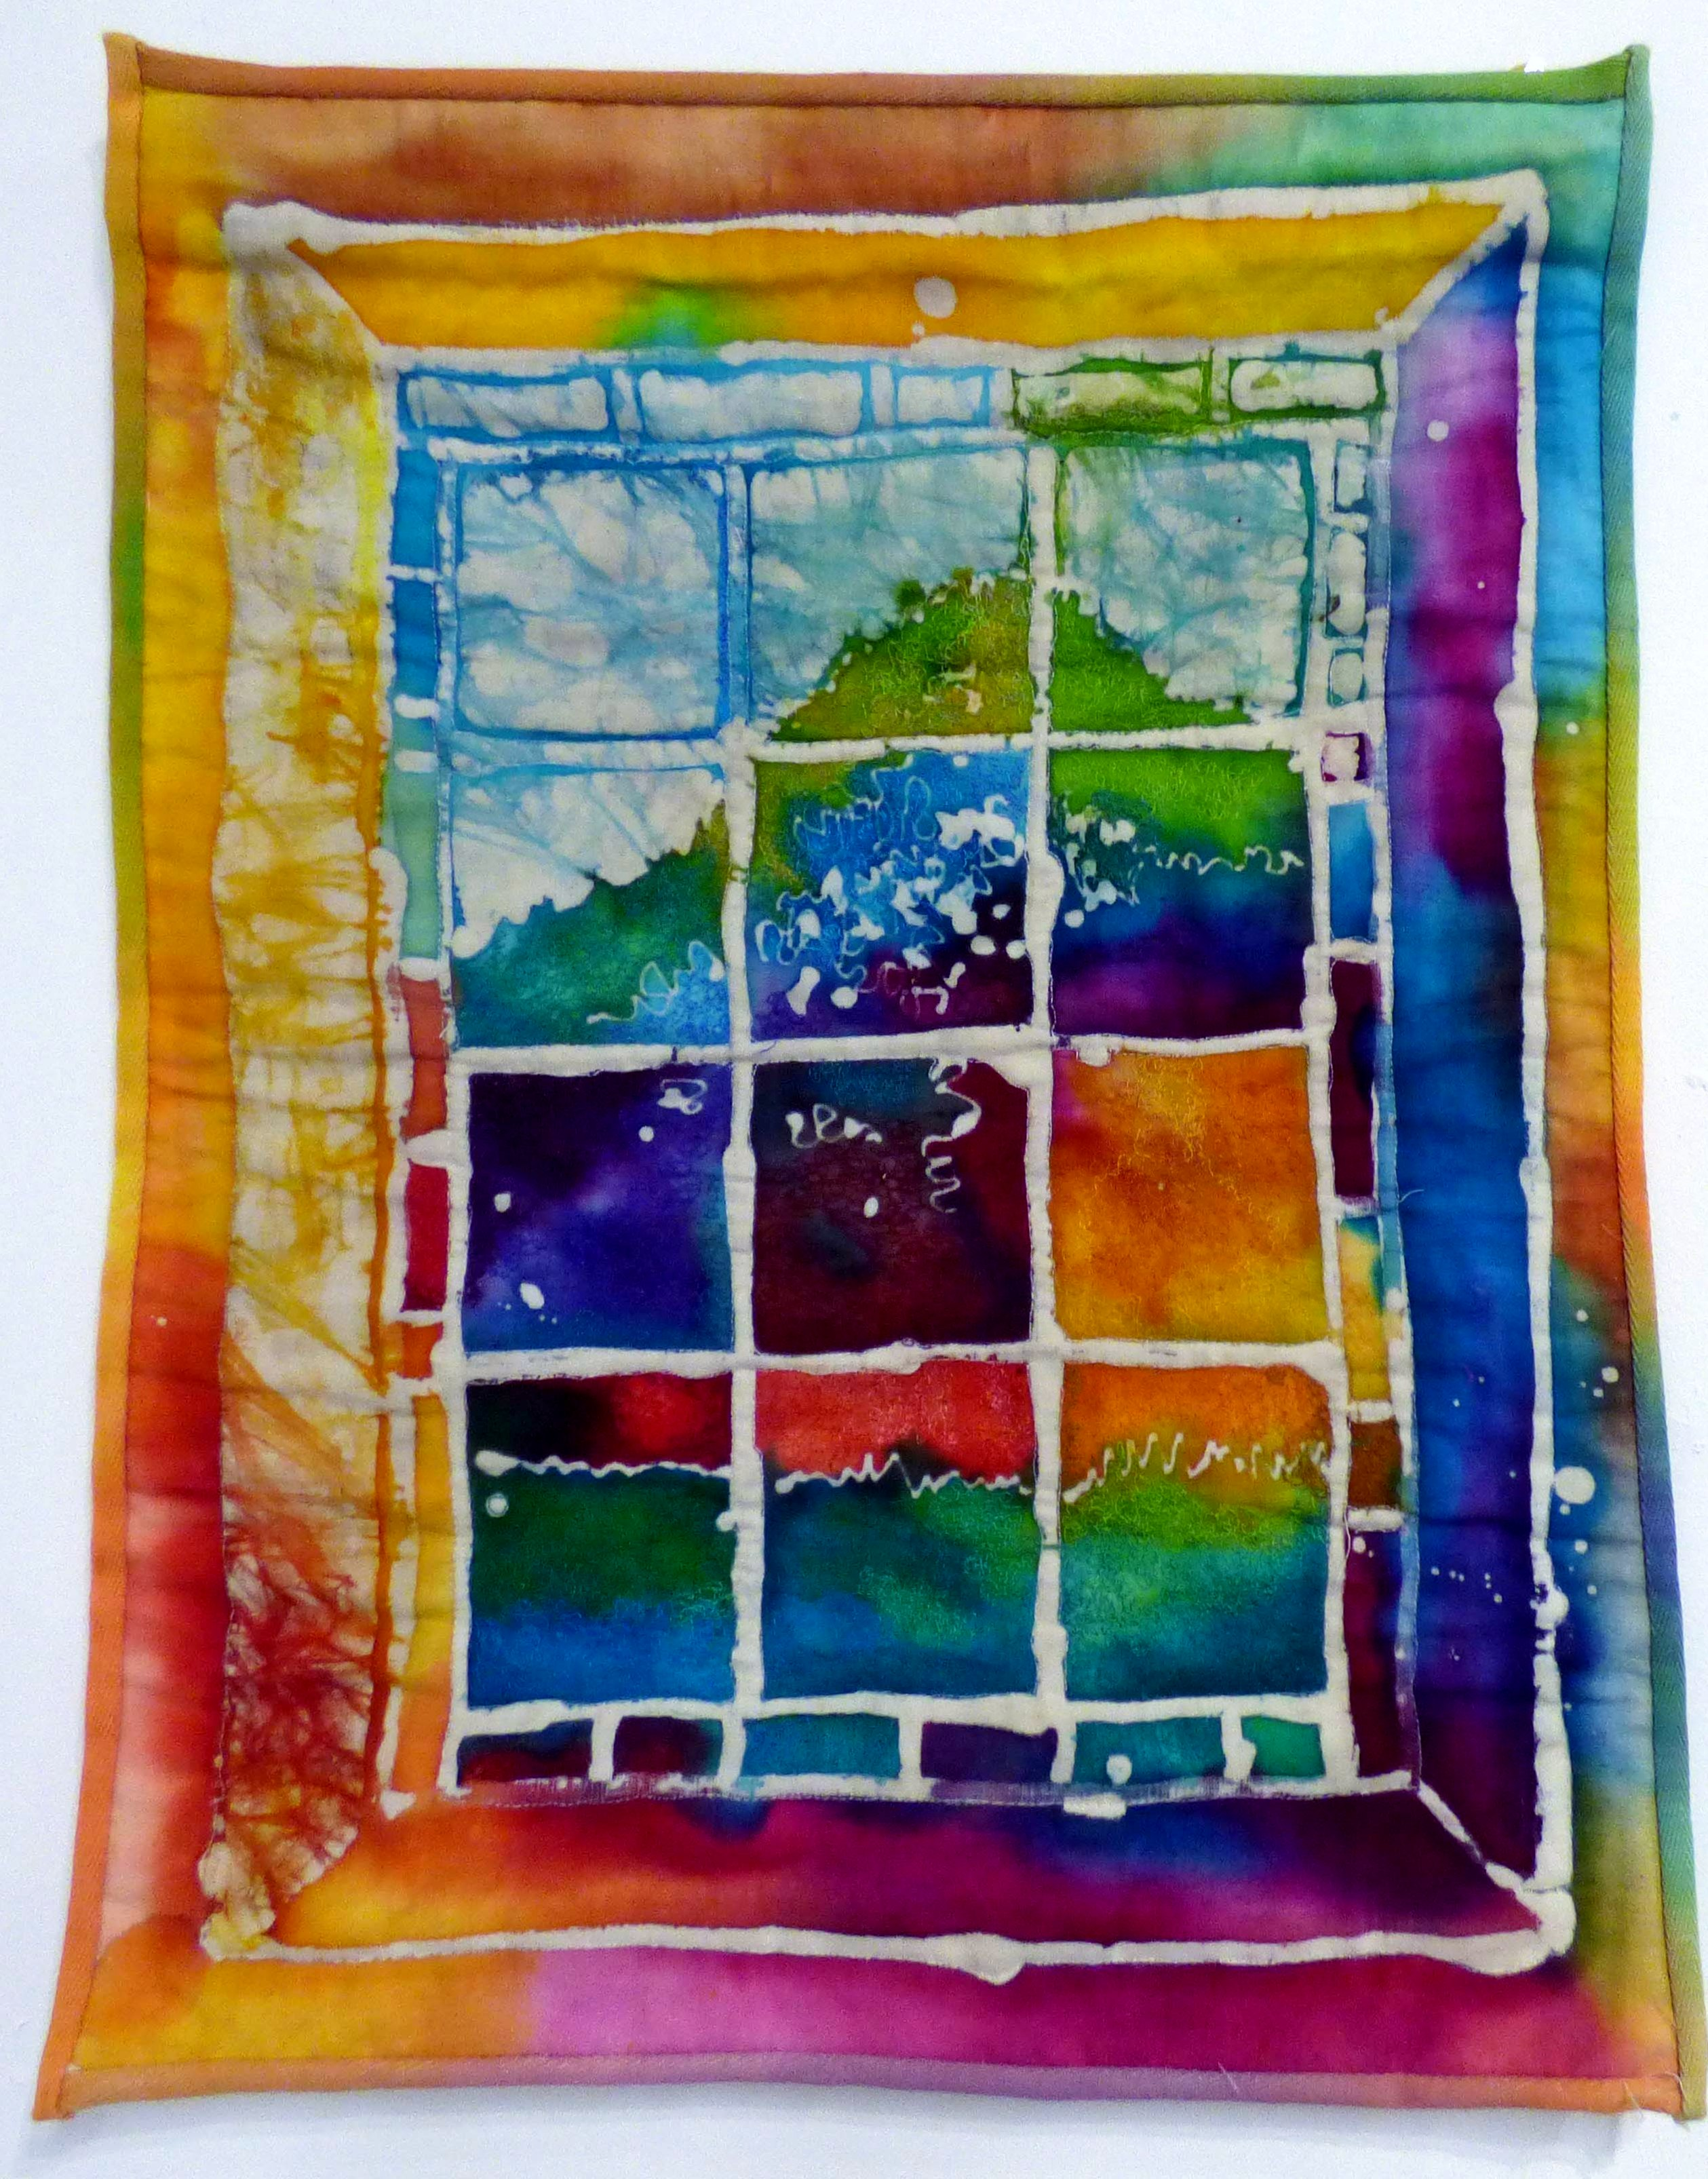 ACCRINGTON WINDOW by Nicky Robertson, Natural Progression Group, July 2021